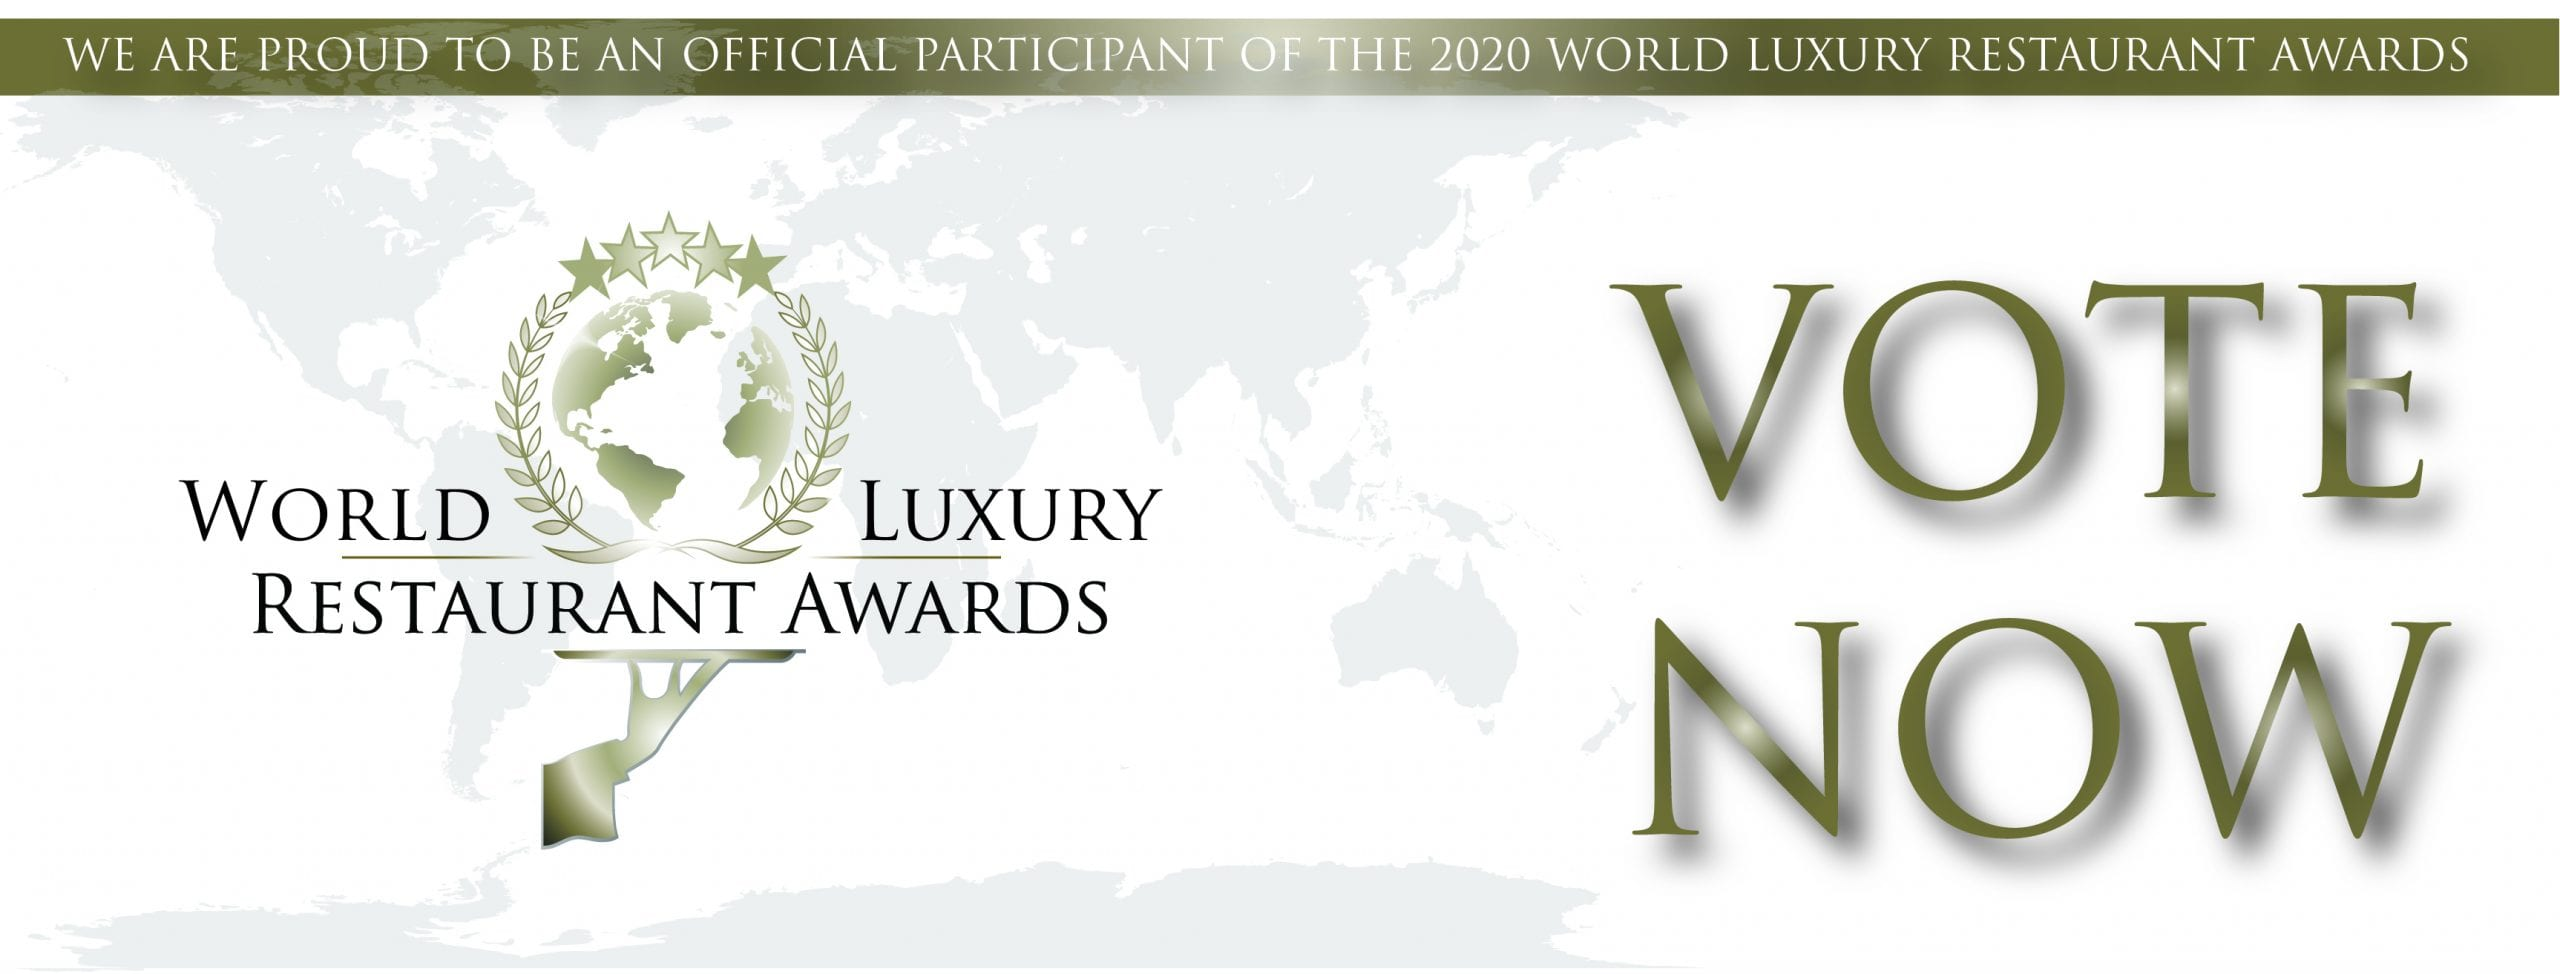 world-luxury-restaurant-awards